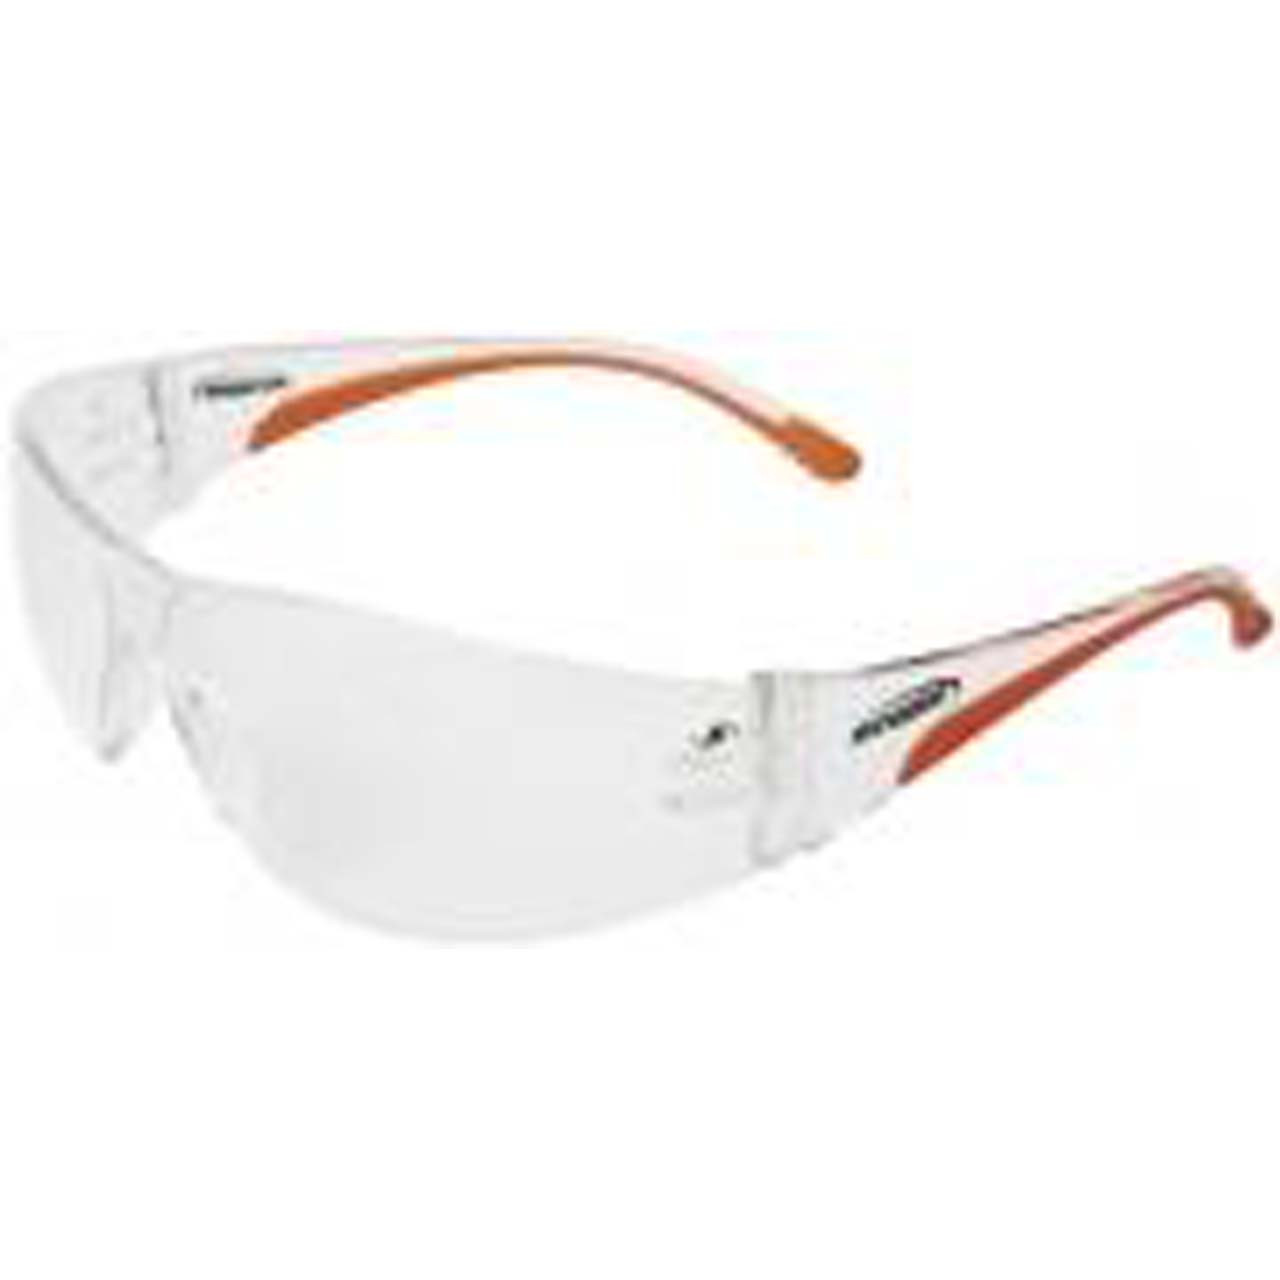 G12.36 - Safety glasses, small face, Mini Boxa